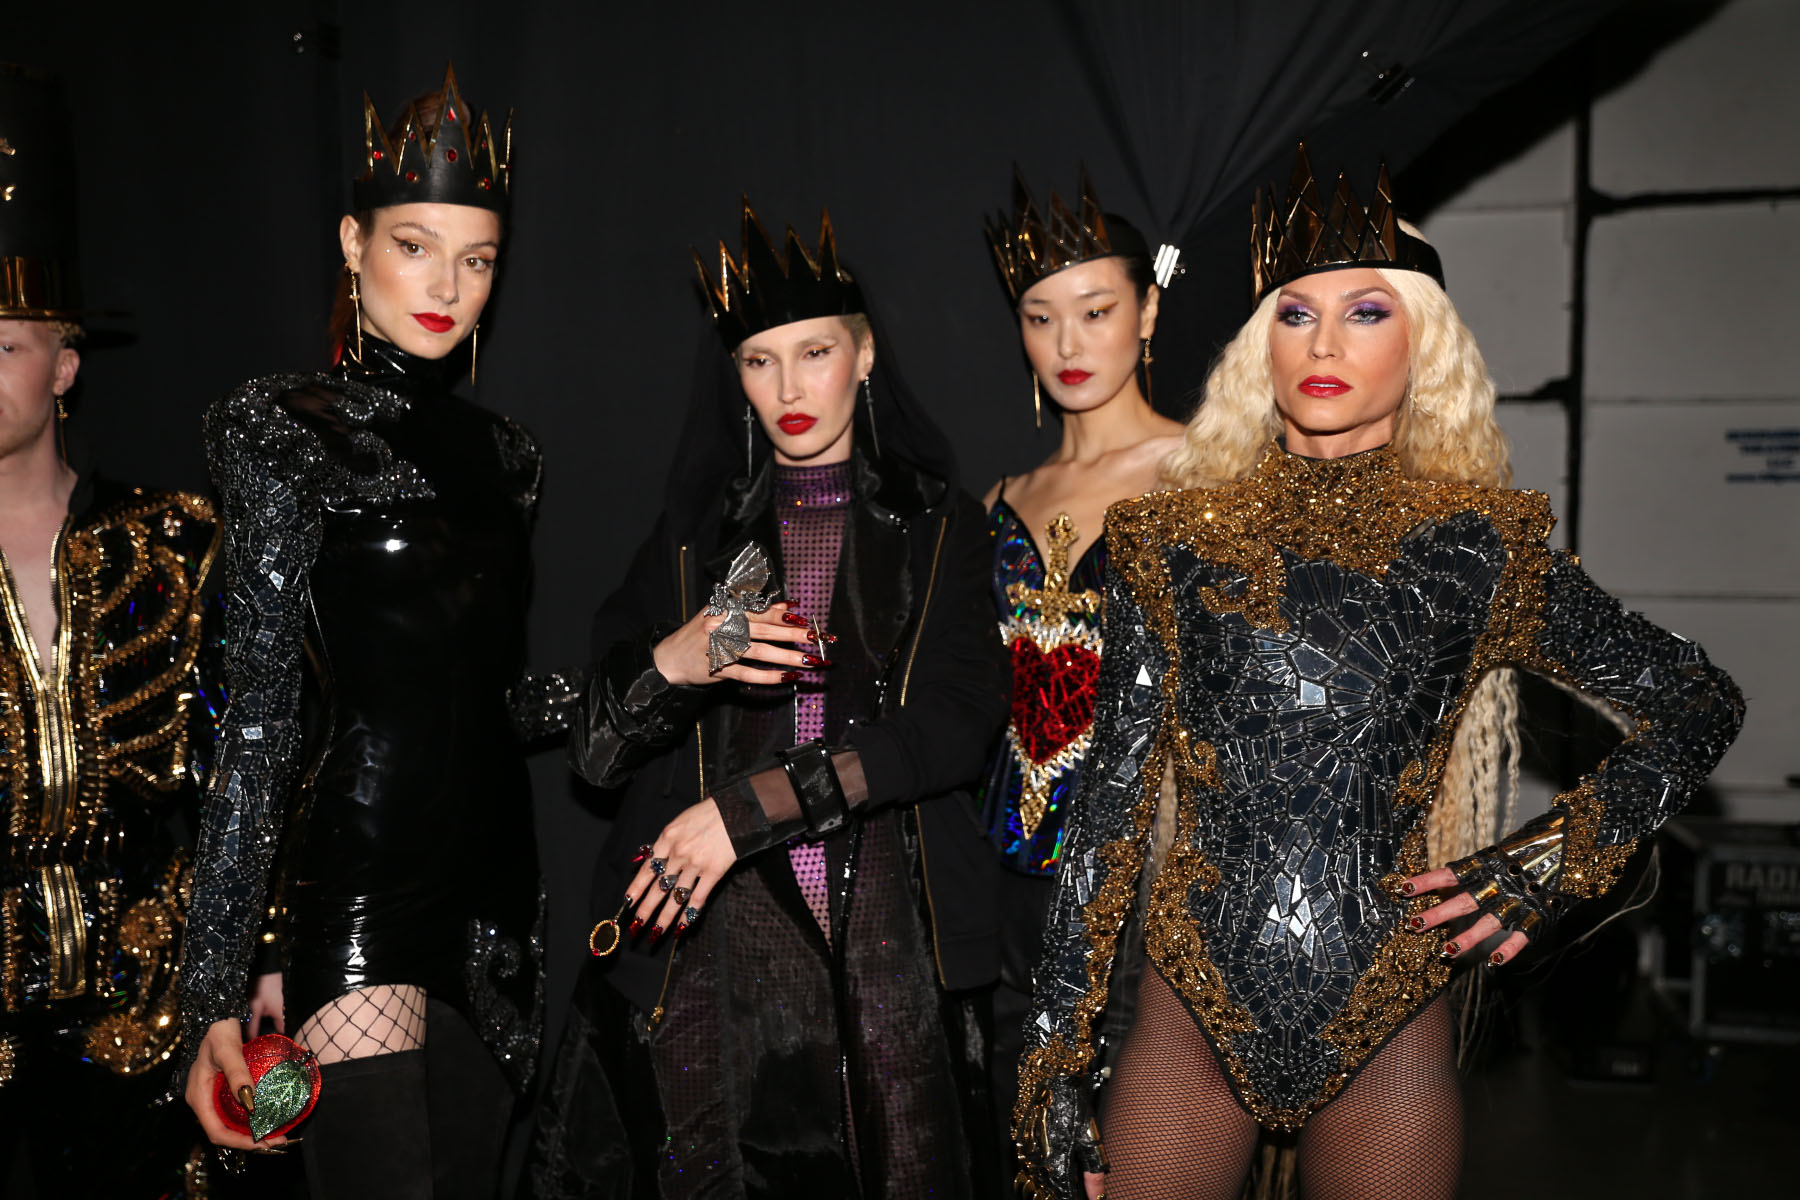 MADNESS, STYLE AND LOTS OF GLAM - BACKSTAGE AT THE BLONDS S/S2019